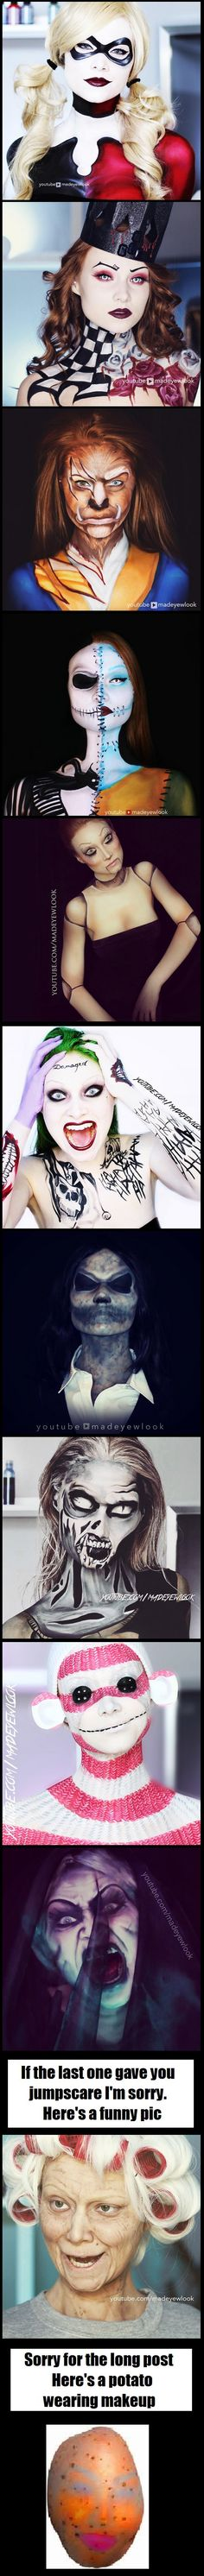 Same girl - with different makeup - 9GAG/// this is Lex for those who don't know. She has a YouTube channel:Madeyewlook if you're interested,she's an inspiration!